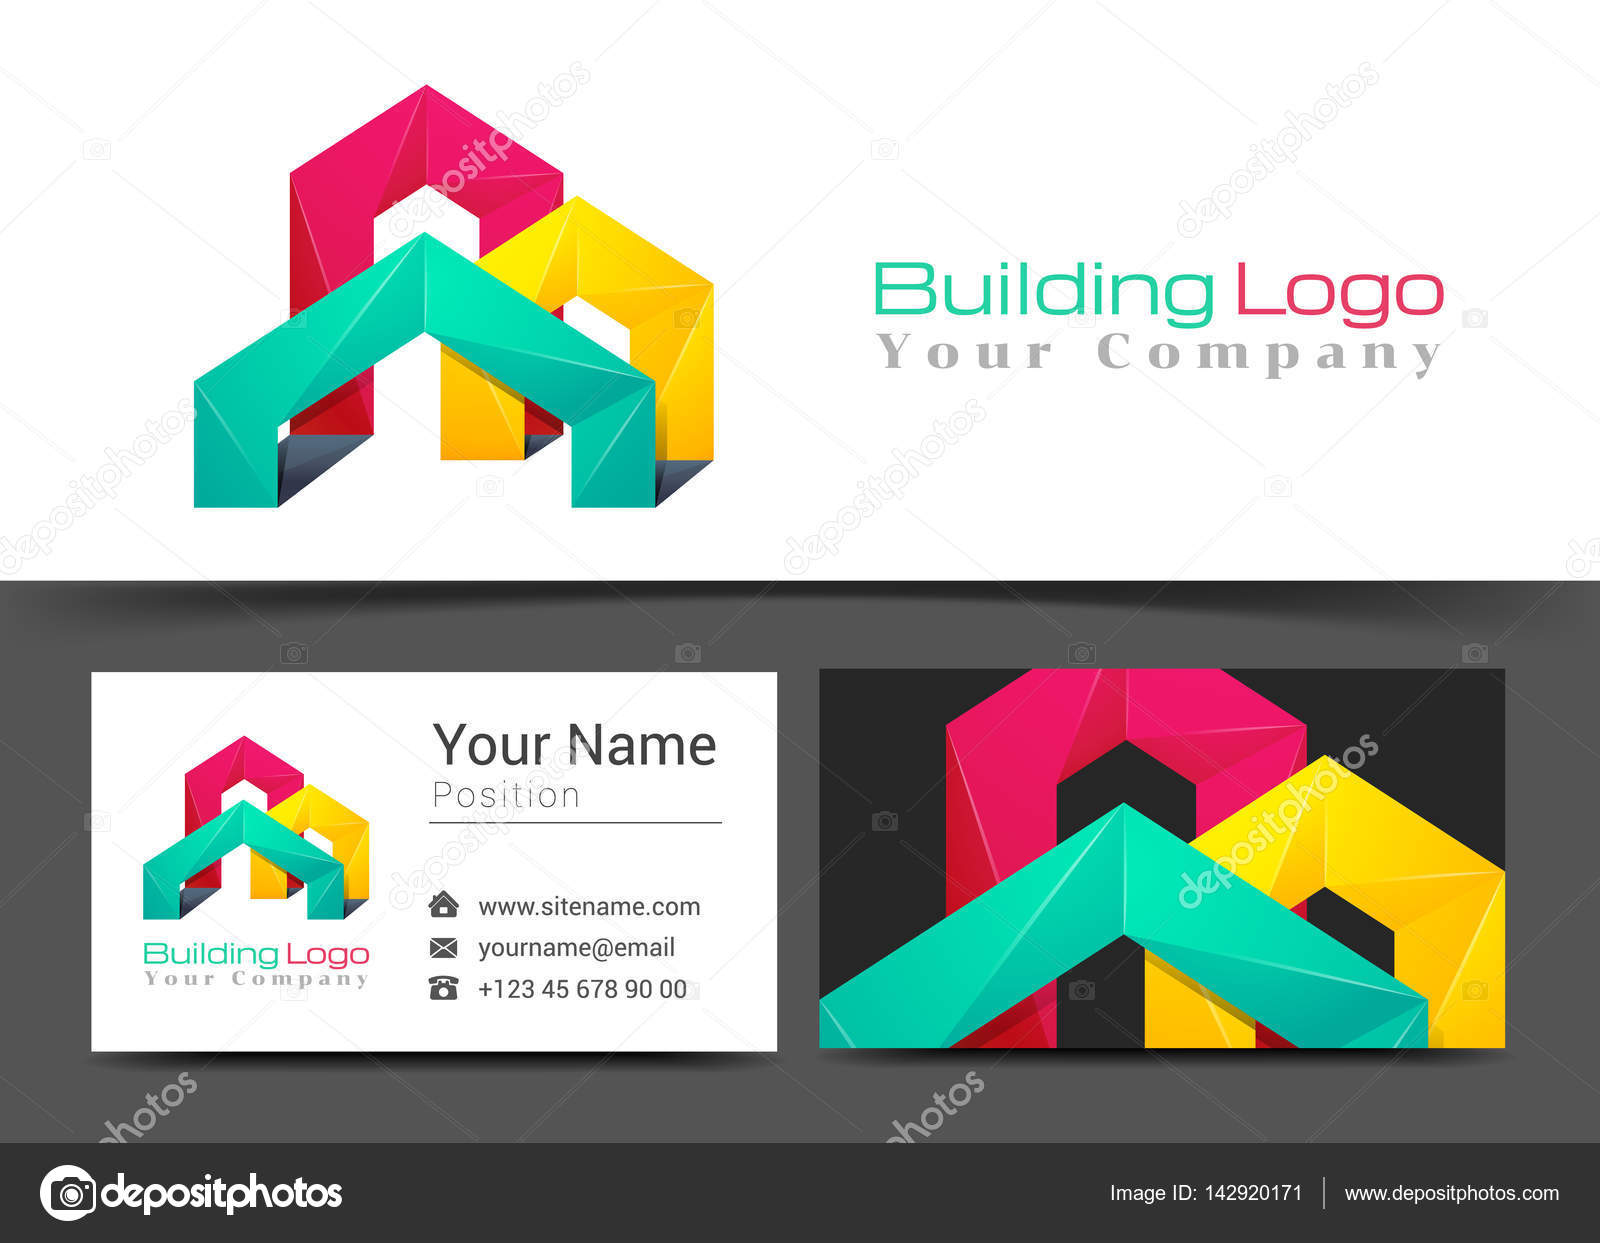 Logo Dentreprise De Batiment Et Le Modele Signe Carte Visite Design Creatif Avec Colore Logotype Identite Visuelle Composition Faite Delement